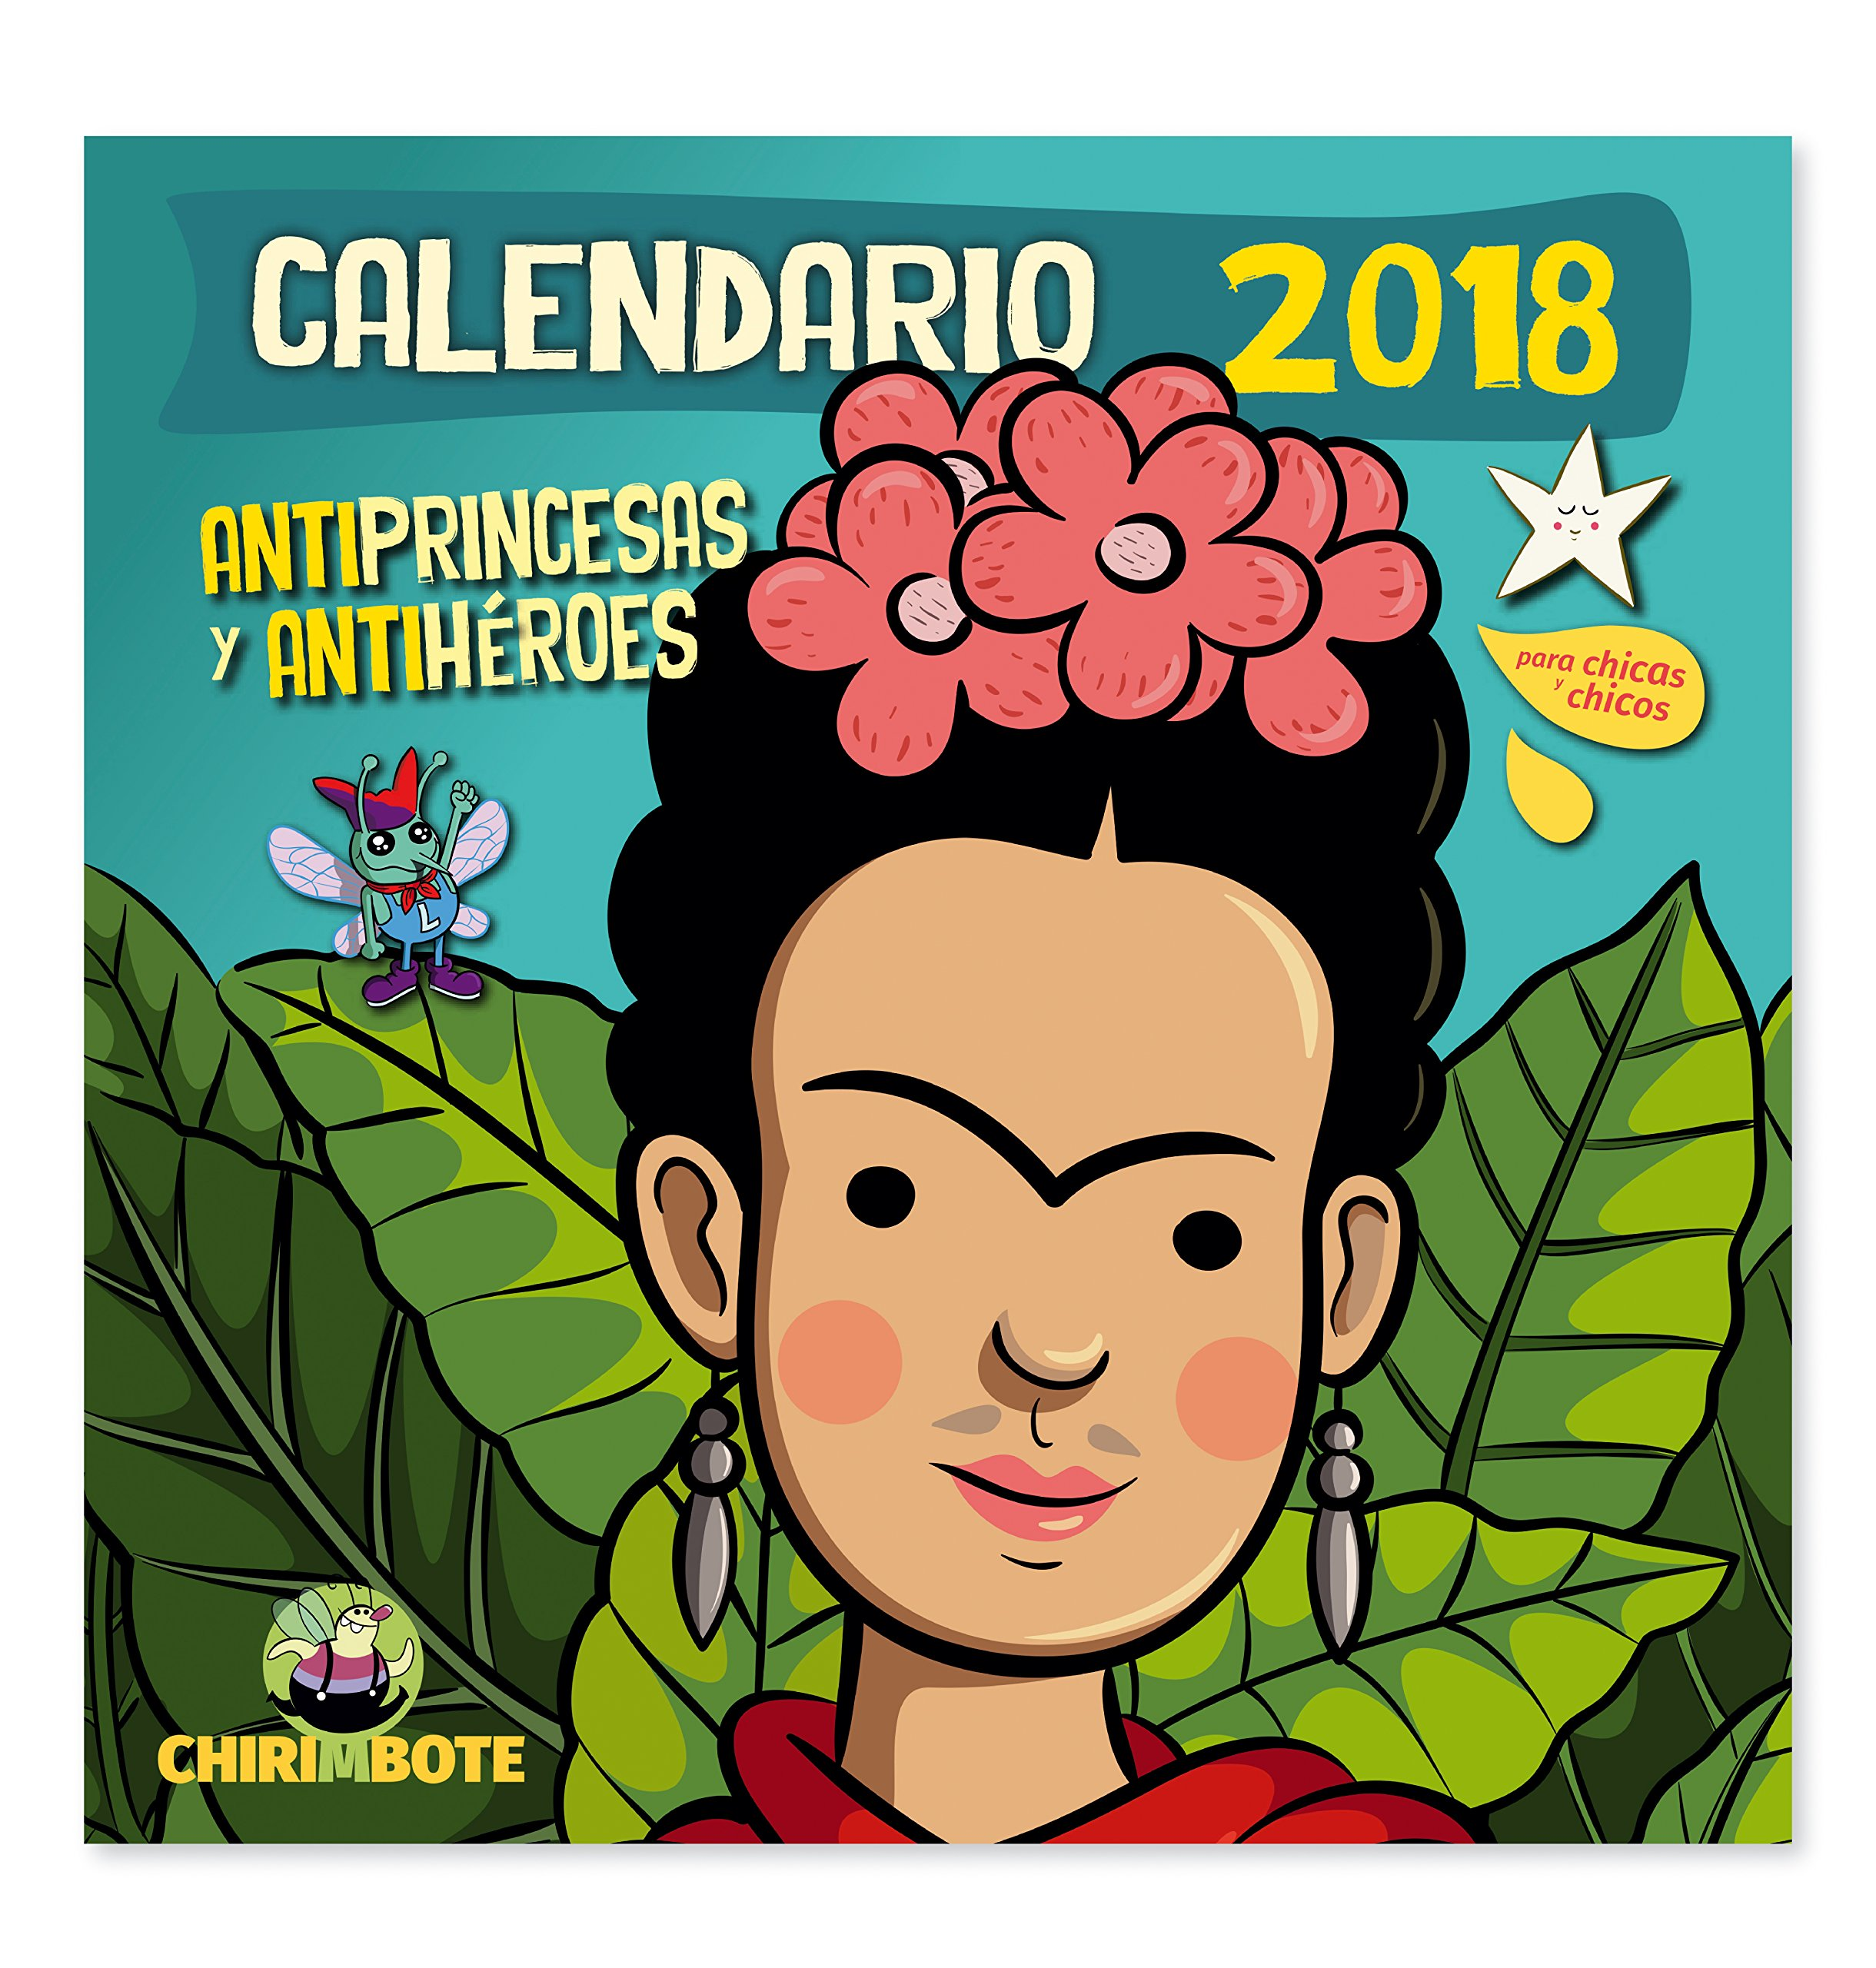 Antiprincesas y antihéroes 2018 Calendario de pared ...